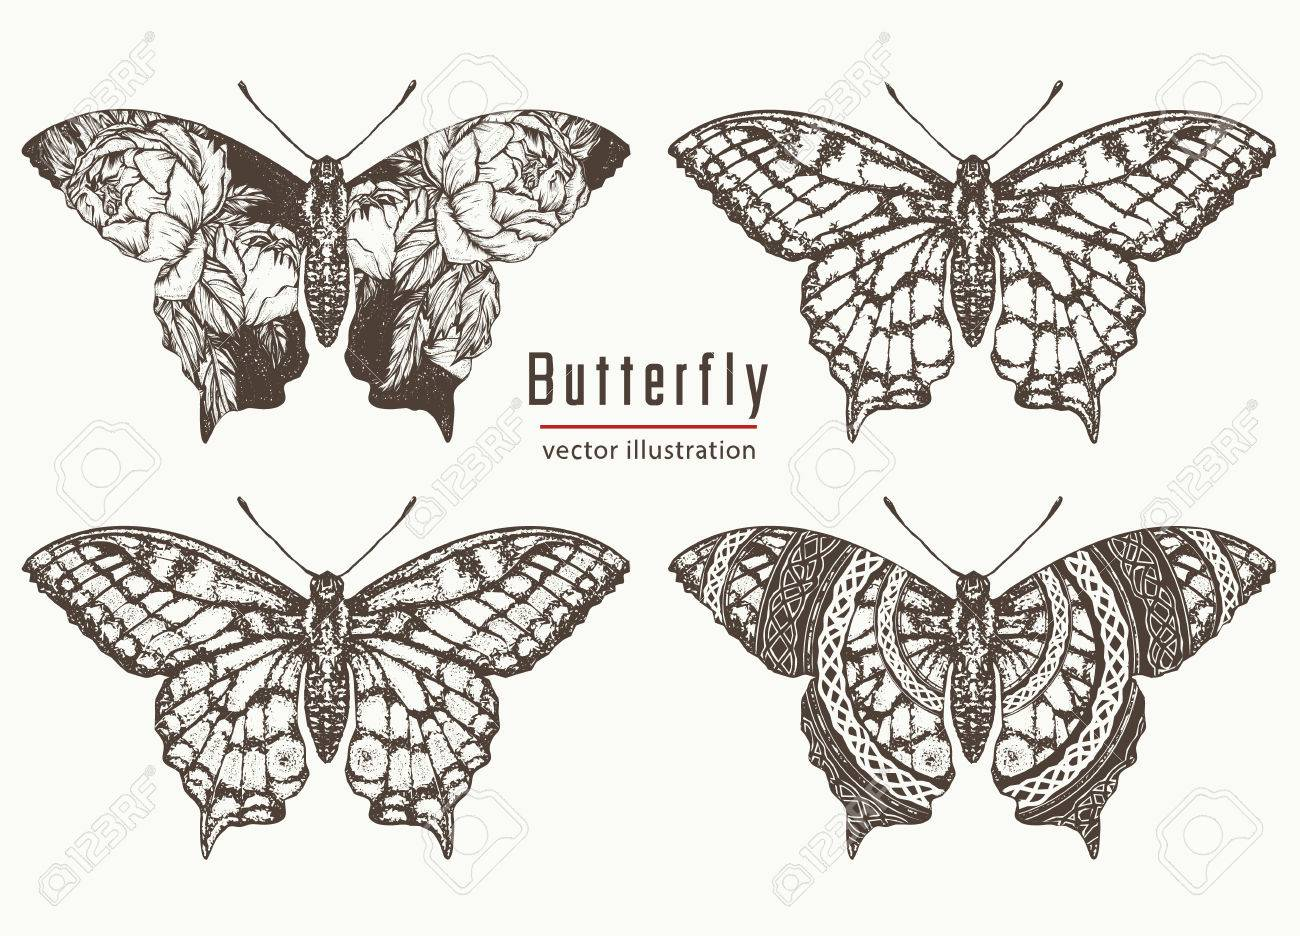 7f23d547fec18 Butterfly hand drawn collection. Realistic butterfly tattoo and t-shirt  design. Beautiful Swallowtail